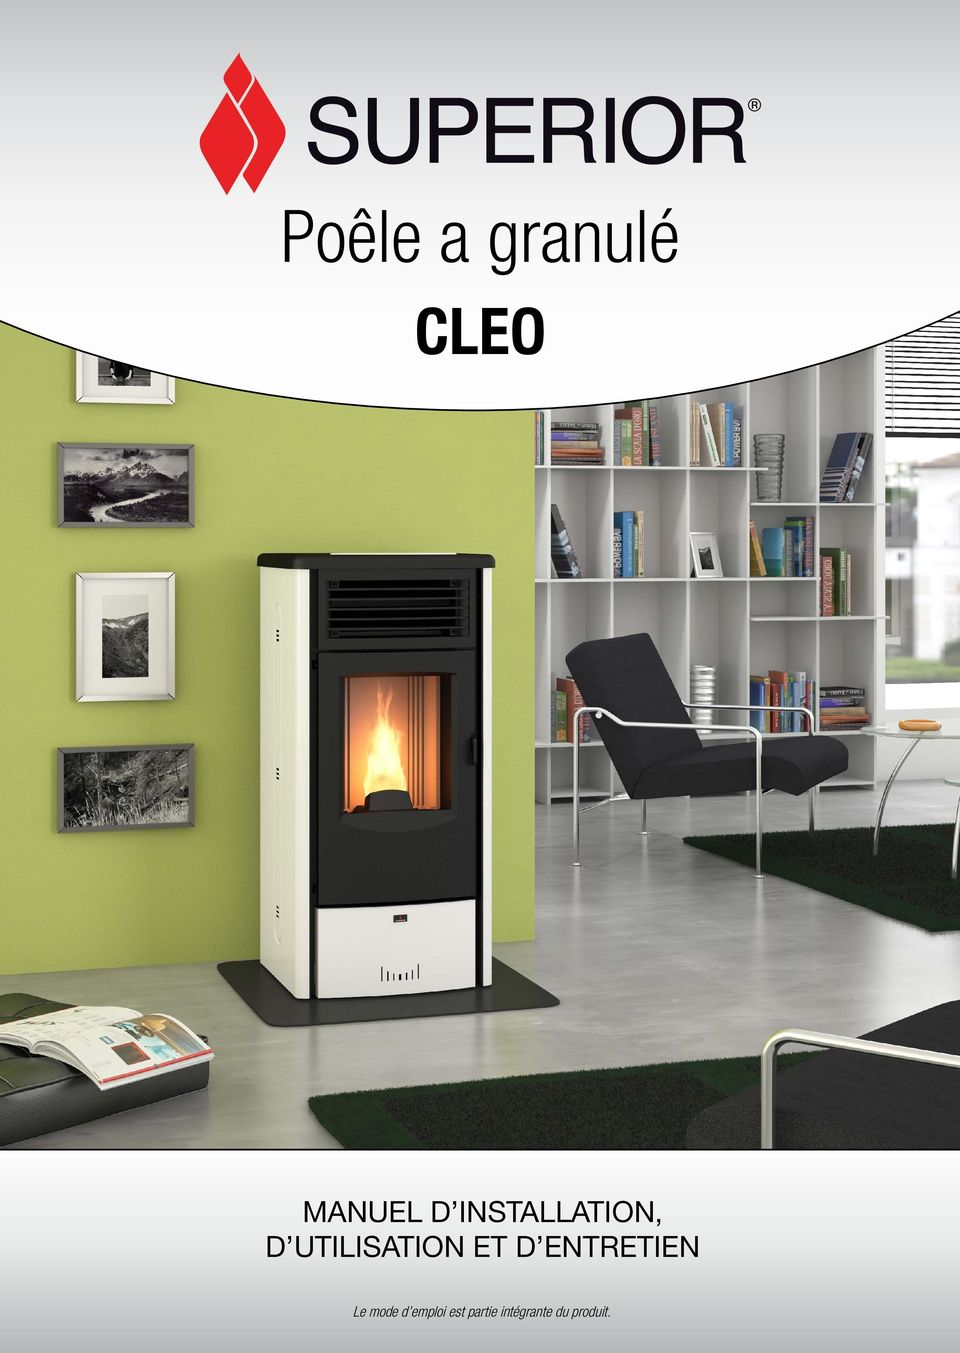 po le a granul cleo manuel d installation d utilisation. Black Bedroom Furniture Sets. Home Design Ideas